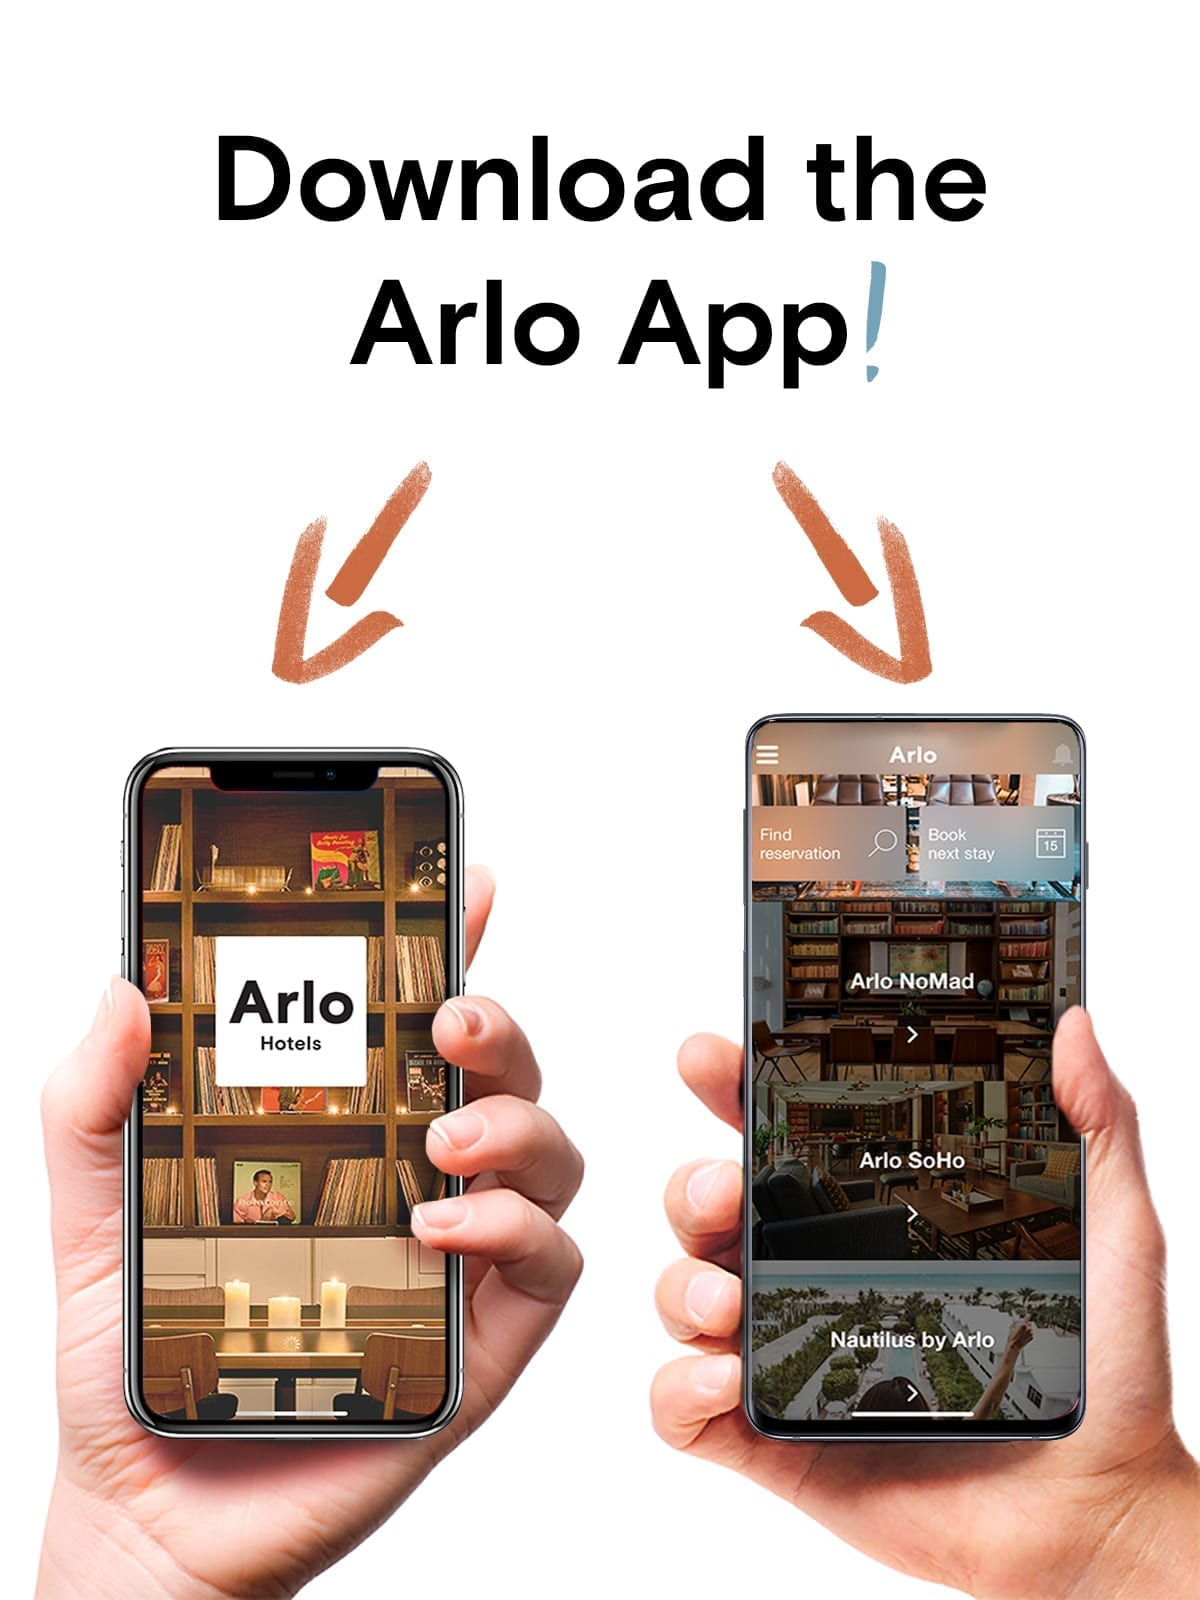 Download the Arlo App. An image of the phone with the Arlo app screenshot